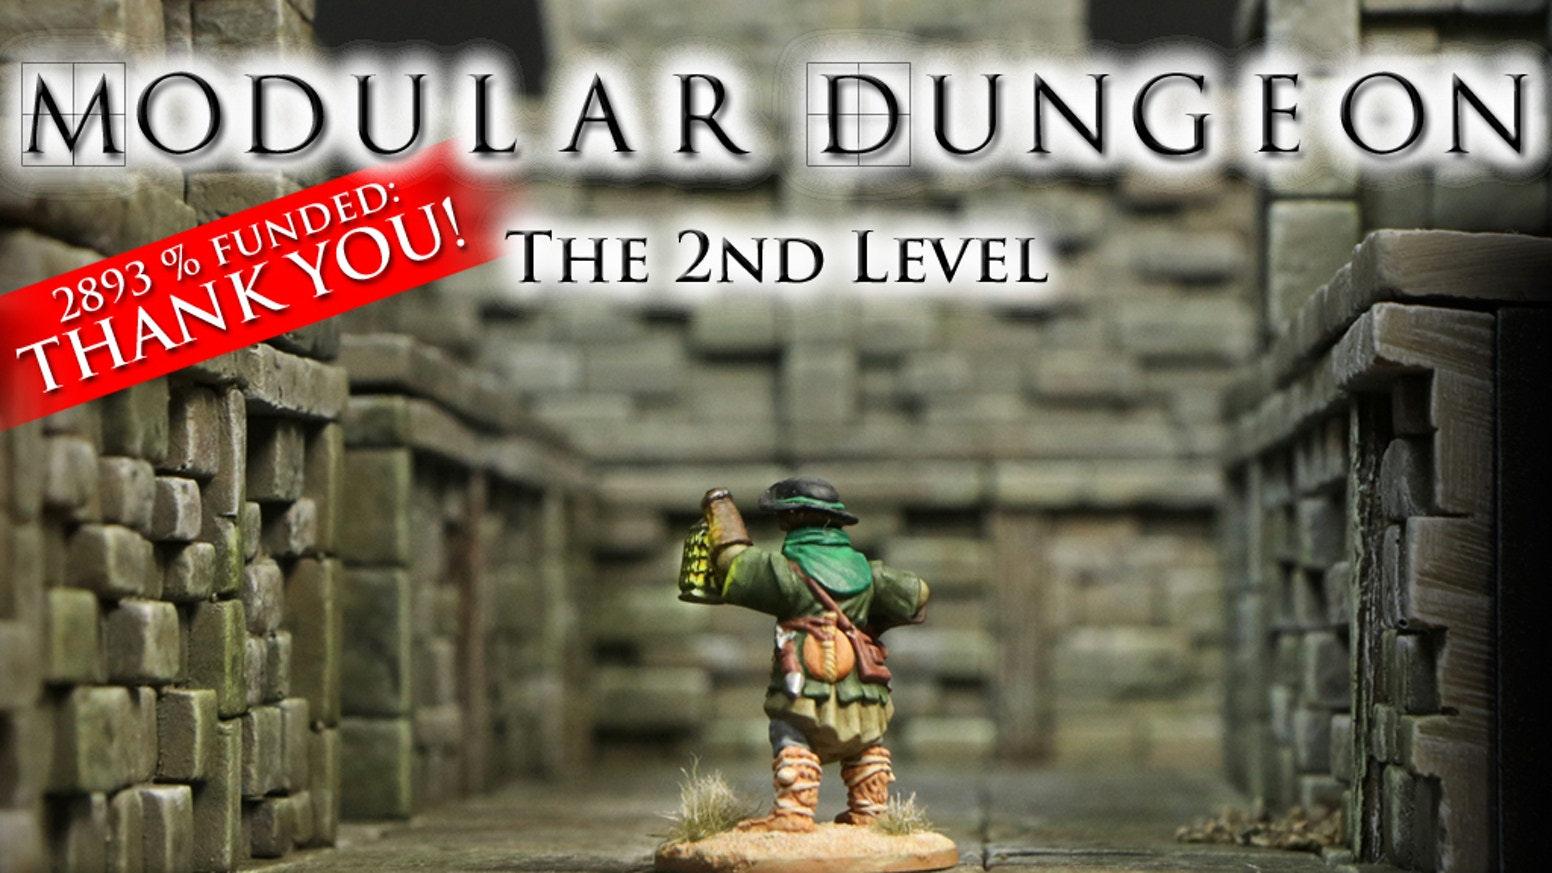 MODULAR DUNGEON is a 3D construction kit to bring all your dungeon ideas to life. Extend them now with brand-new designed add-ons!